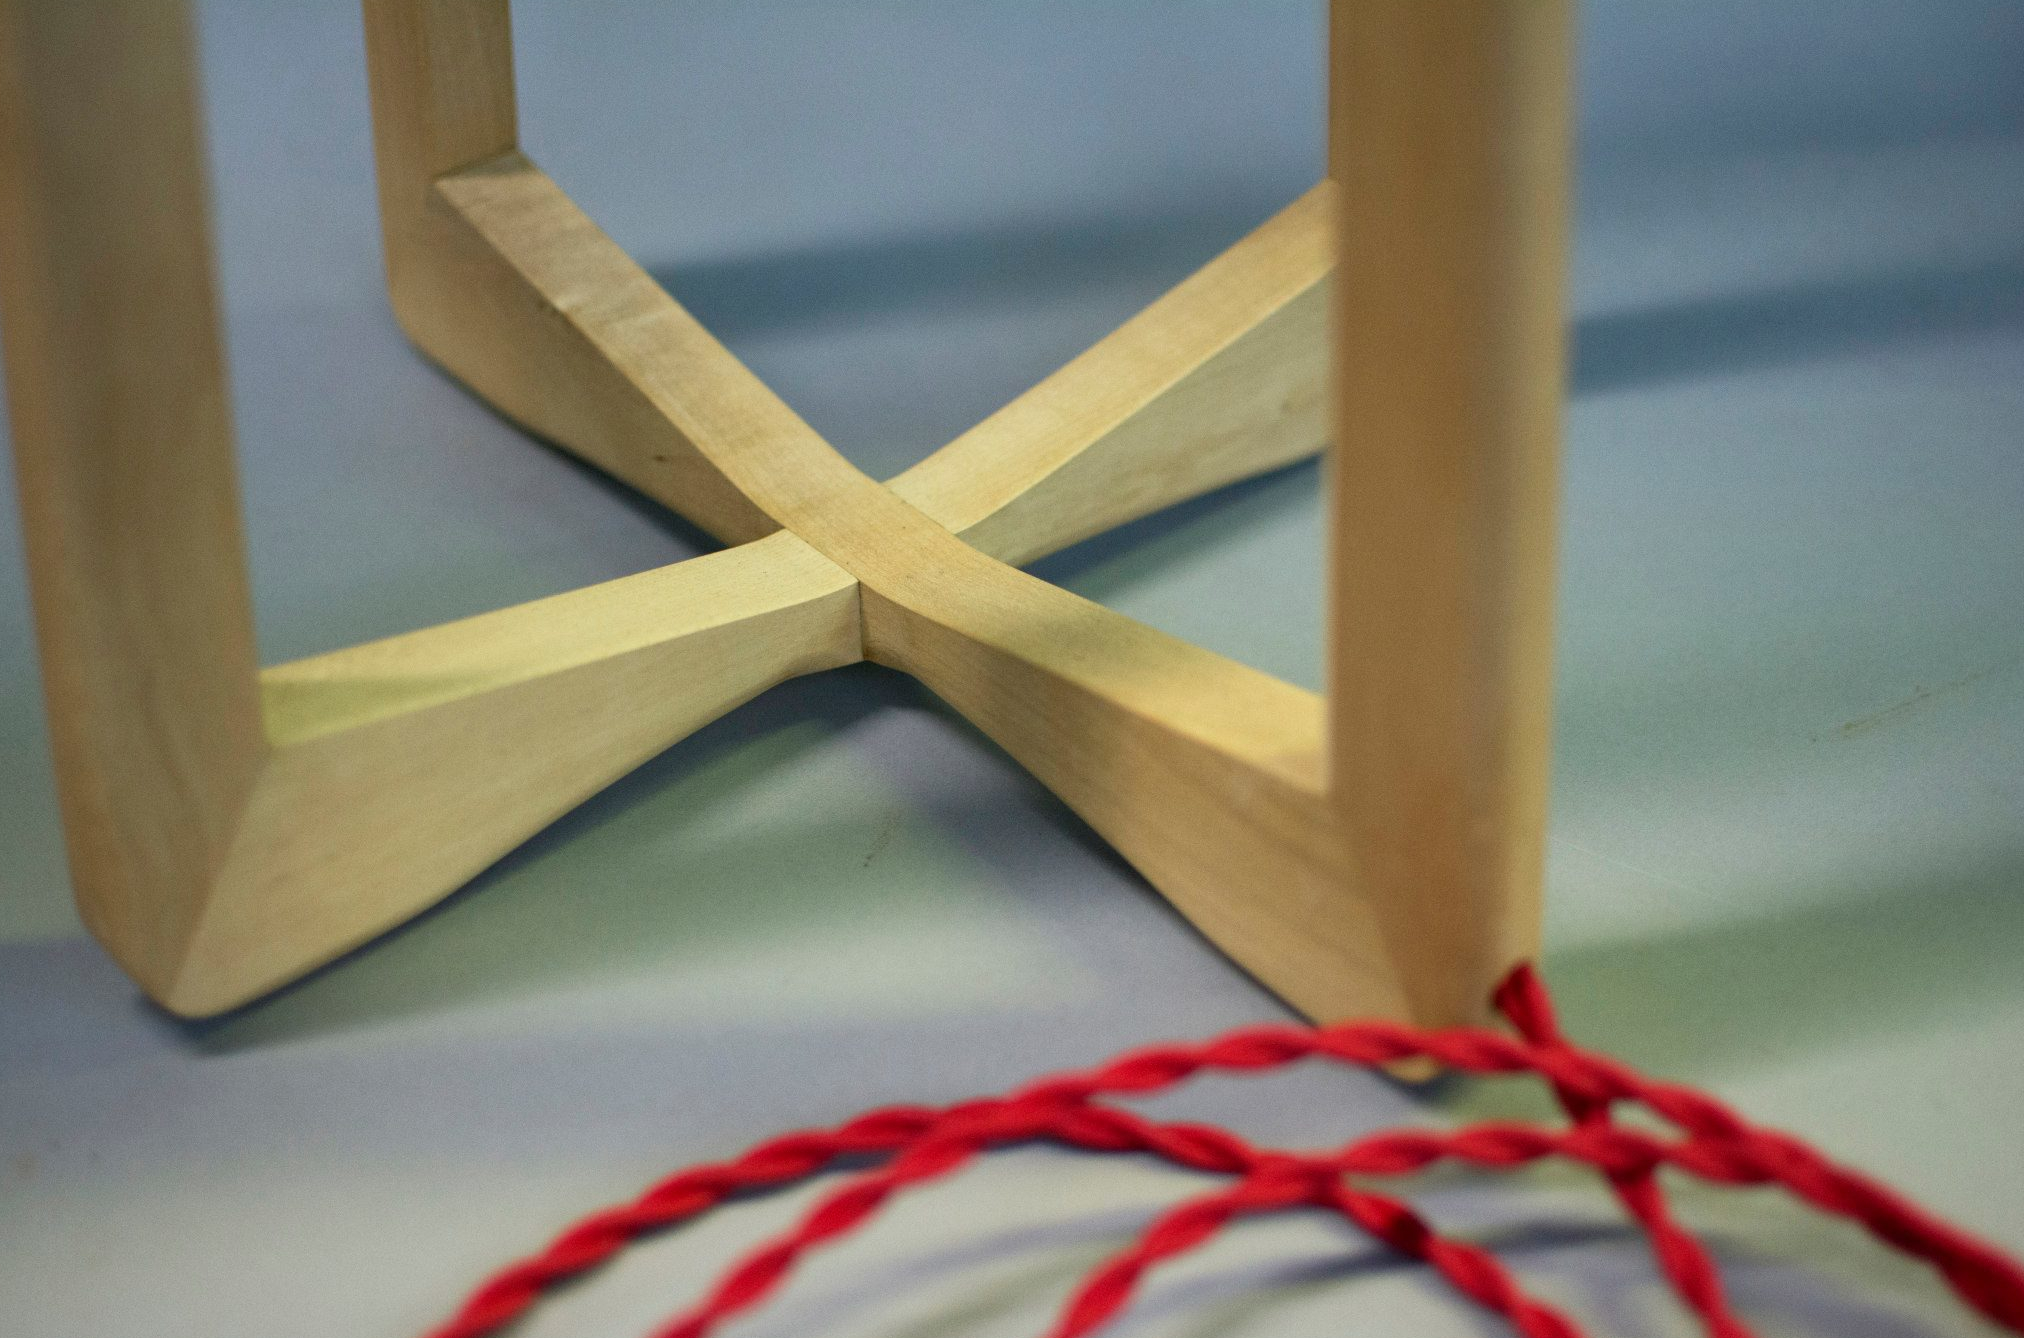 Sycamore lamp base with red braided cord